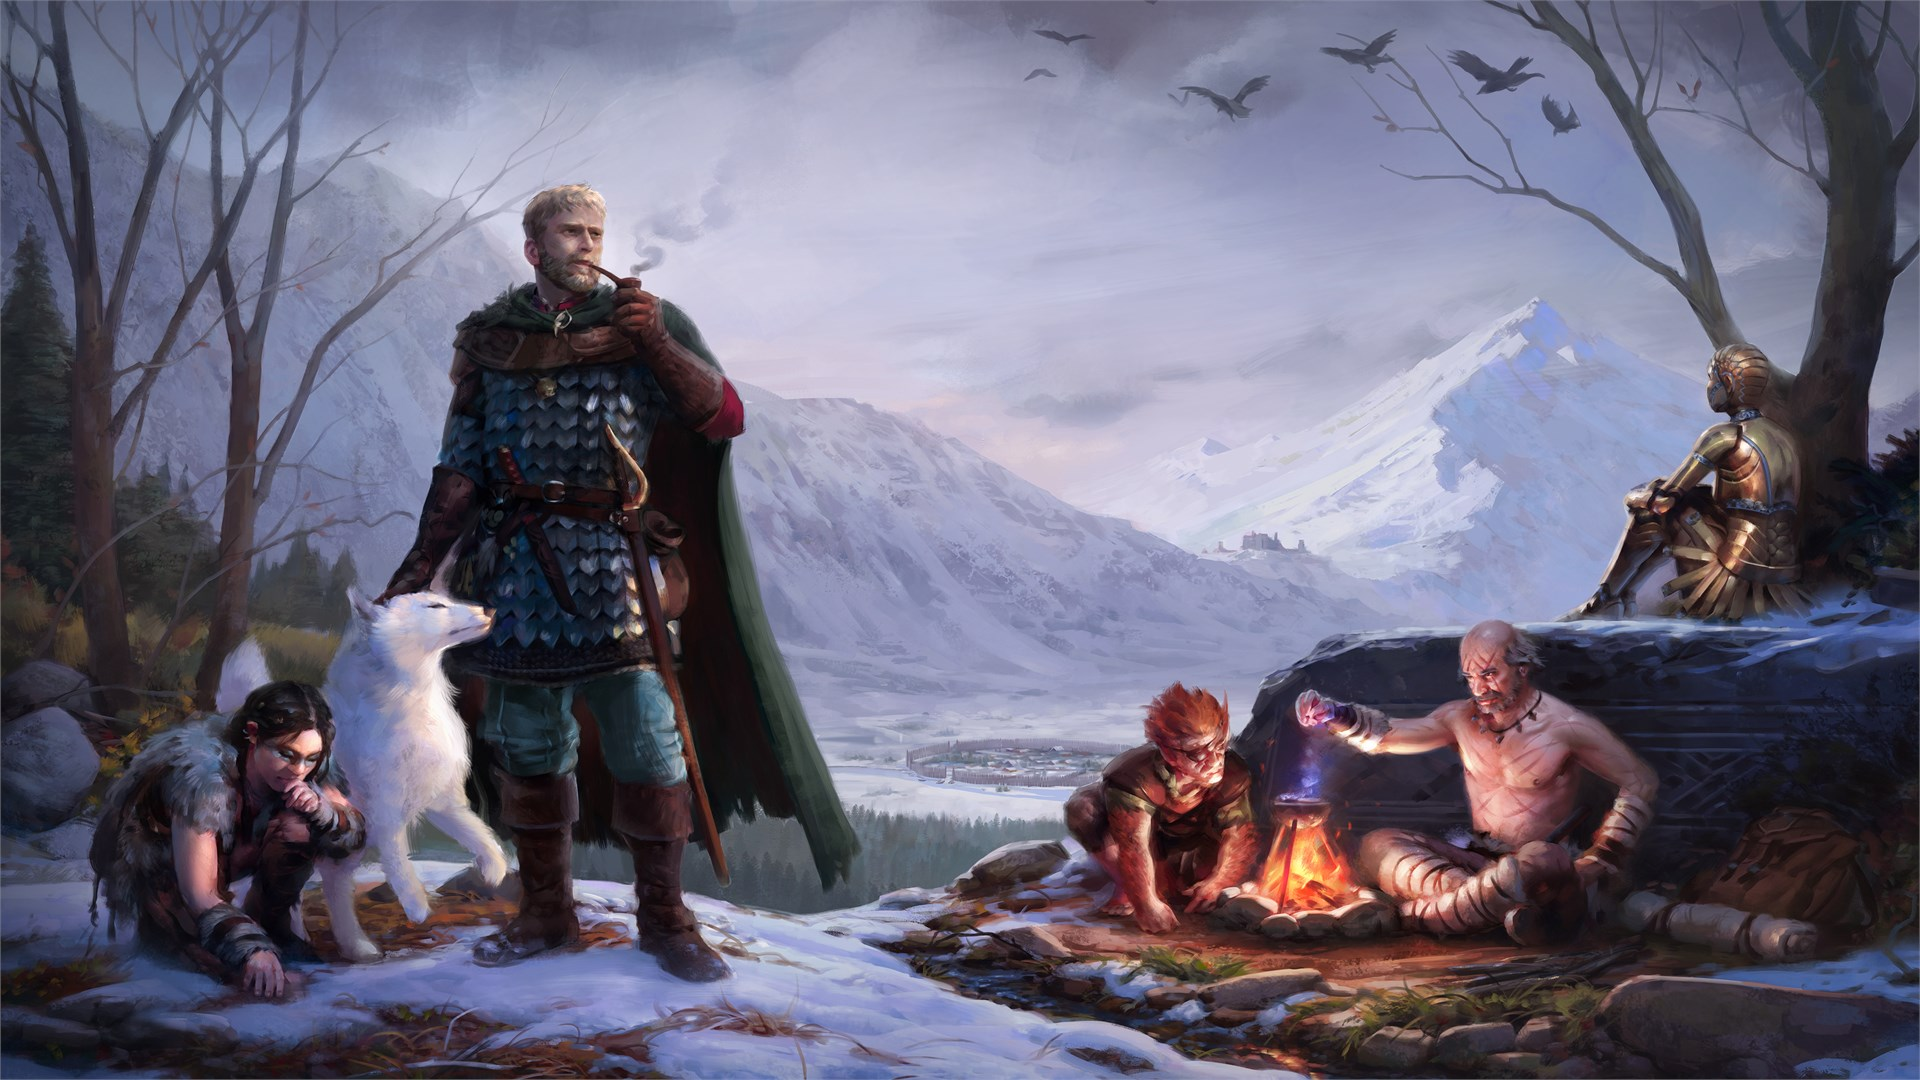 Pillars of Eternity: The White March Expansion Pass